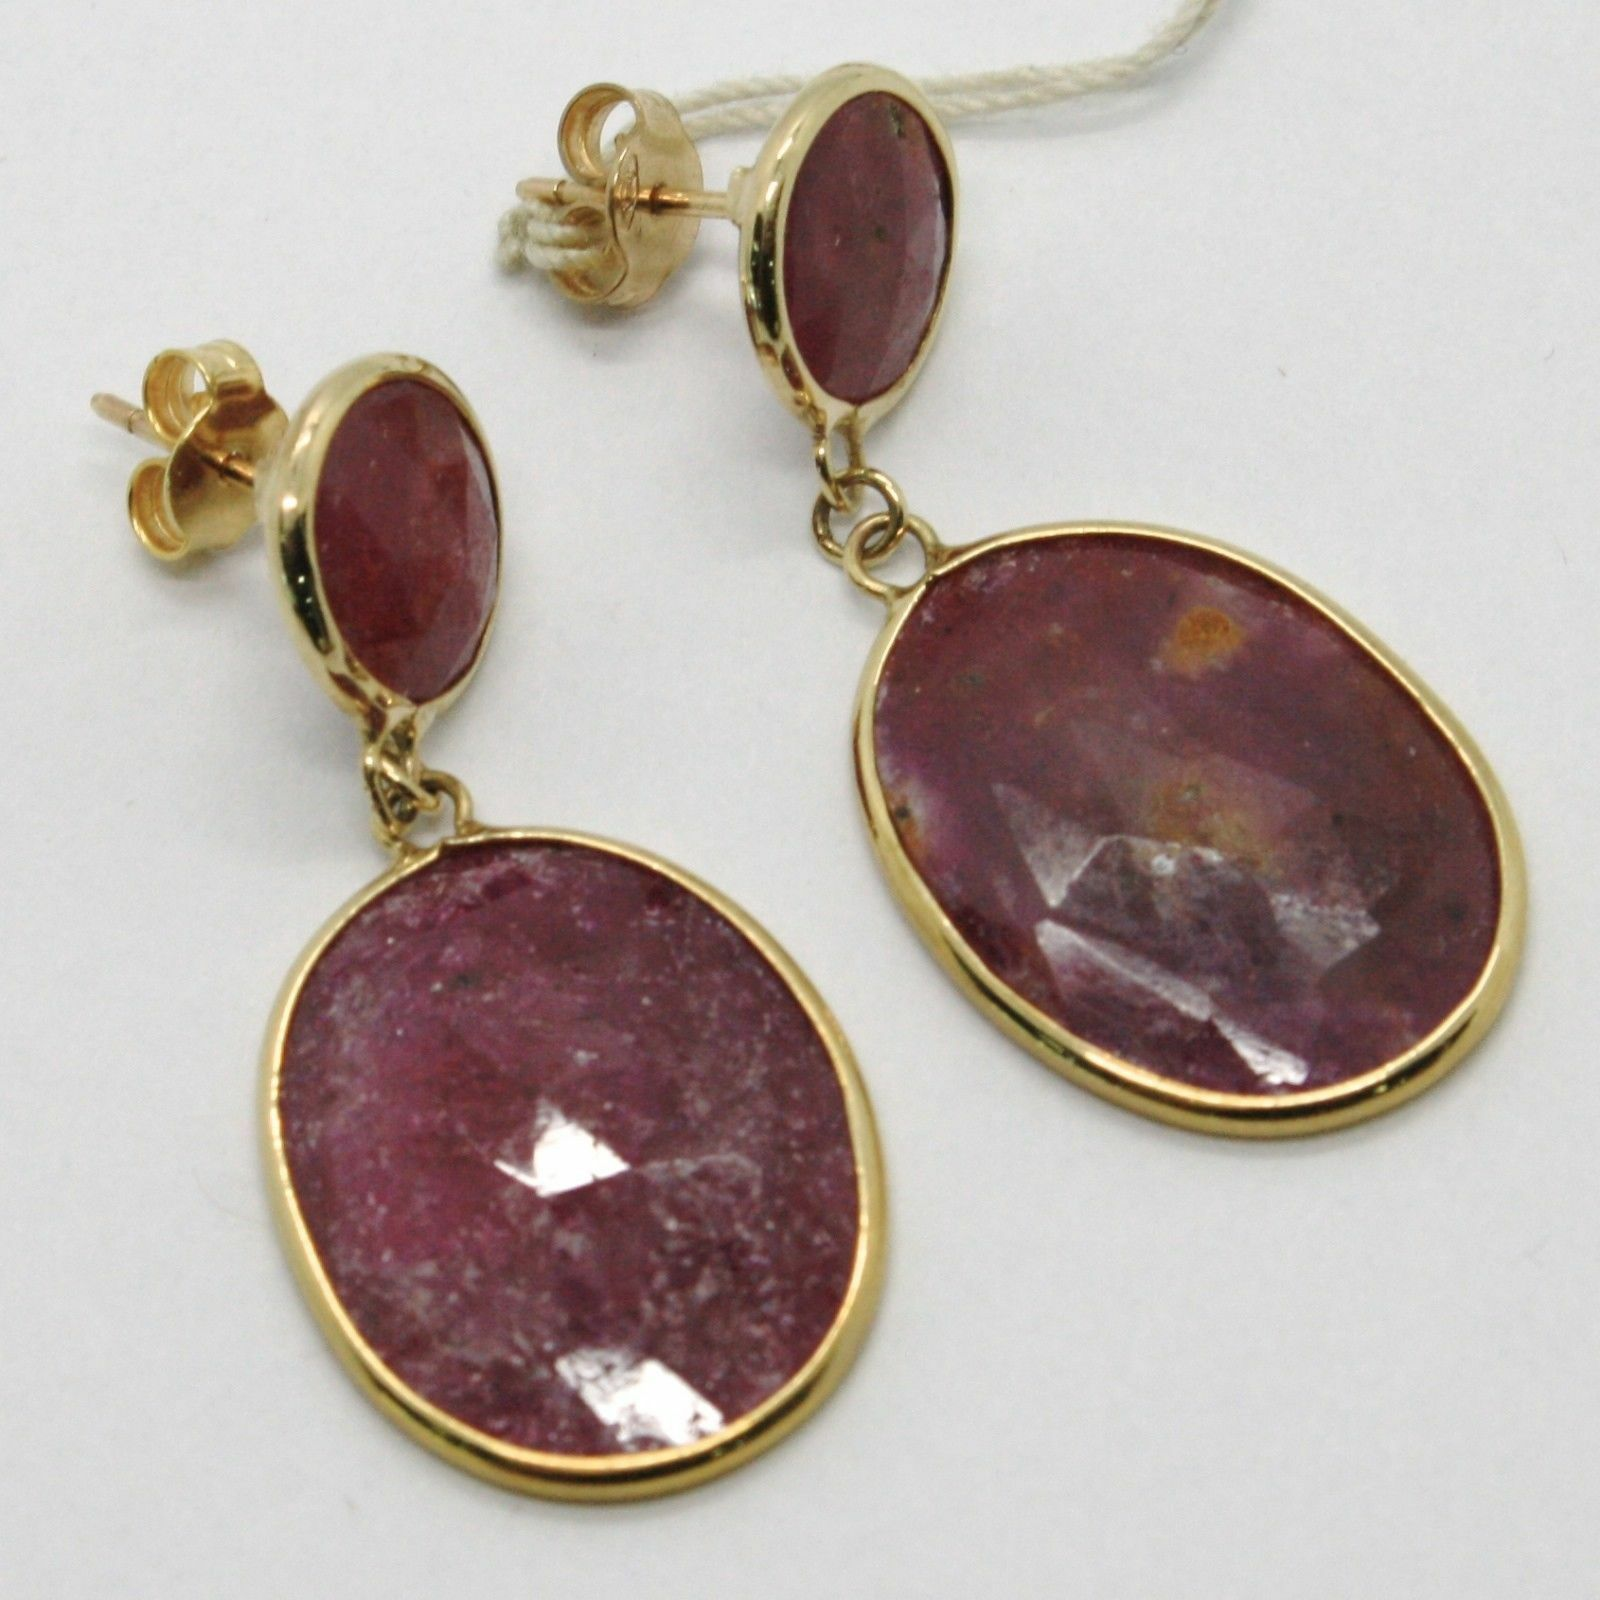 YELLOW GOLD EARRINGS 9K WITH RUBIES ROUGH MADE IN ITALY PIECE SINGLE